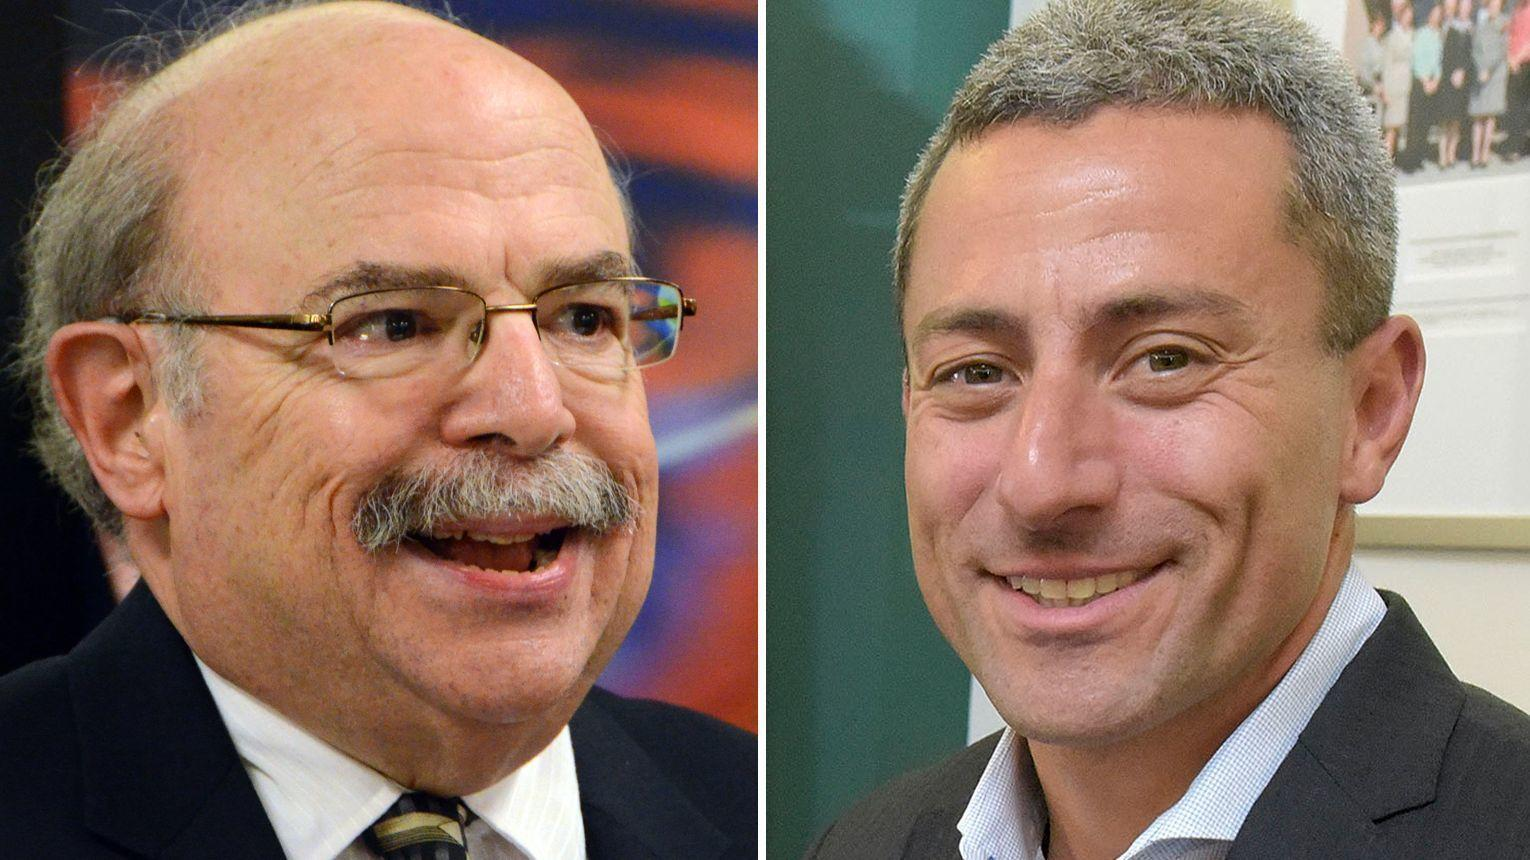 Maryland Sen. Bobby Zirkin faces first challenger in 12 years in Baltimore County race